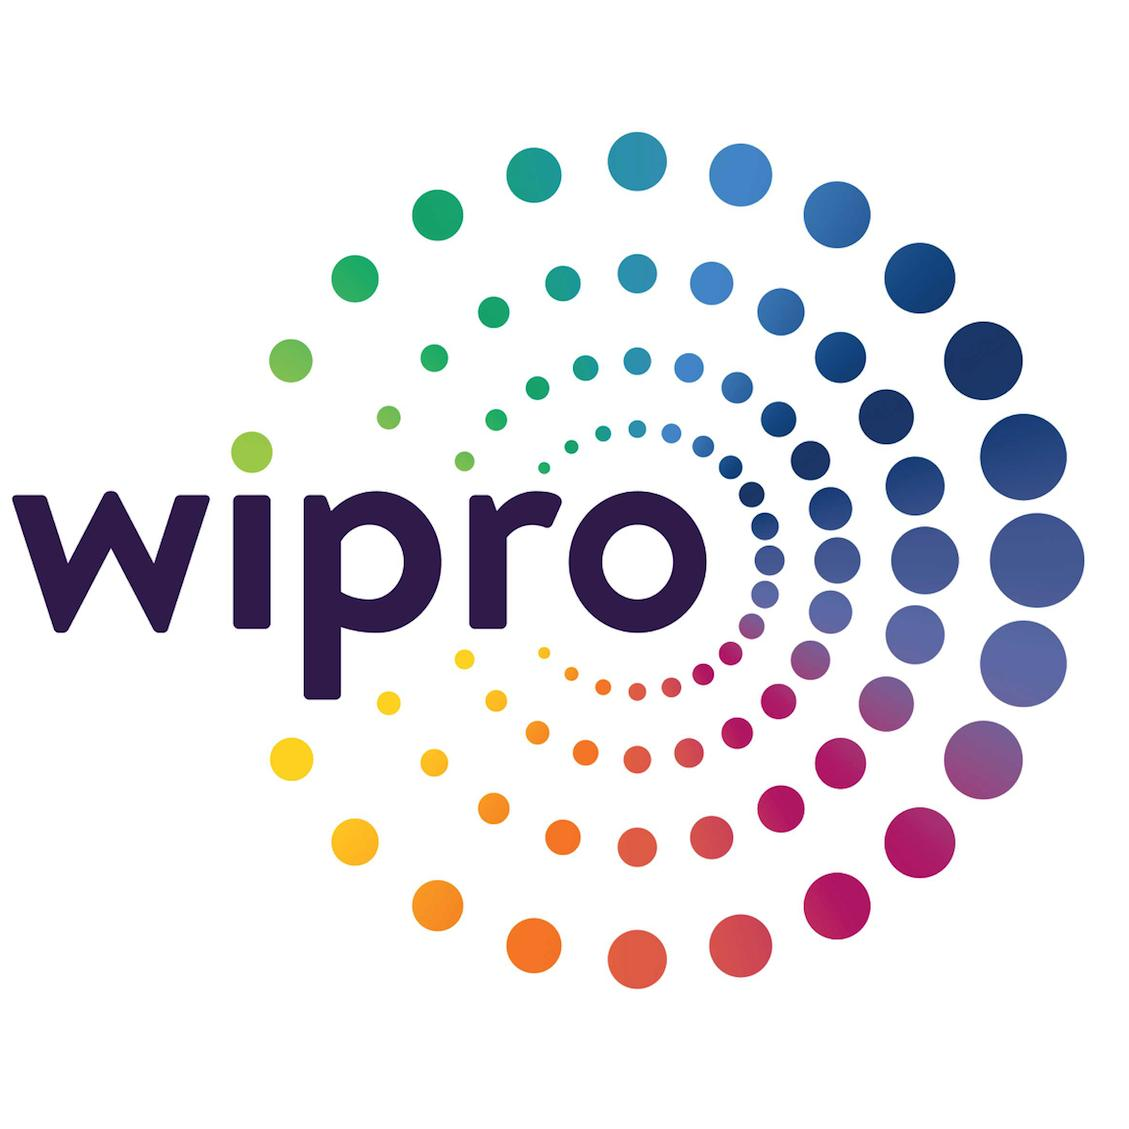 vision mission goals and objectives of wipro